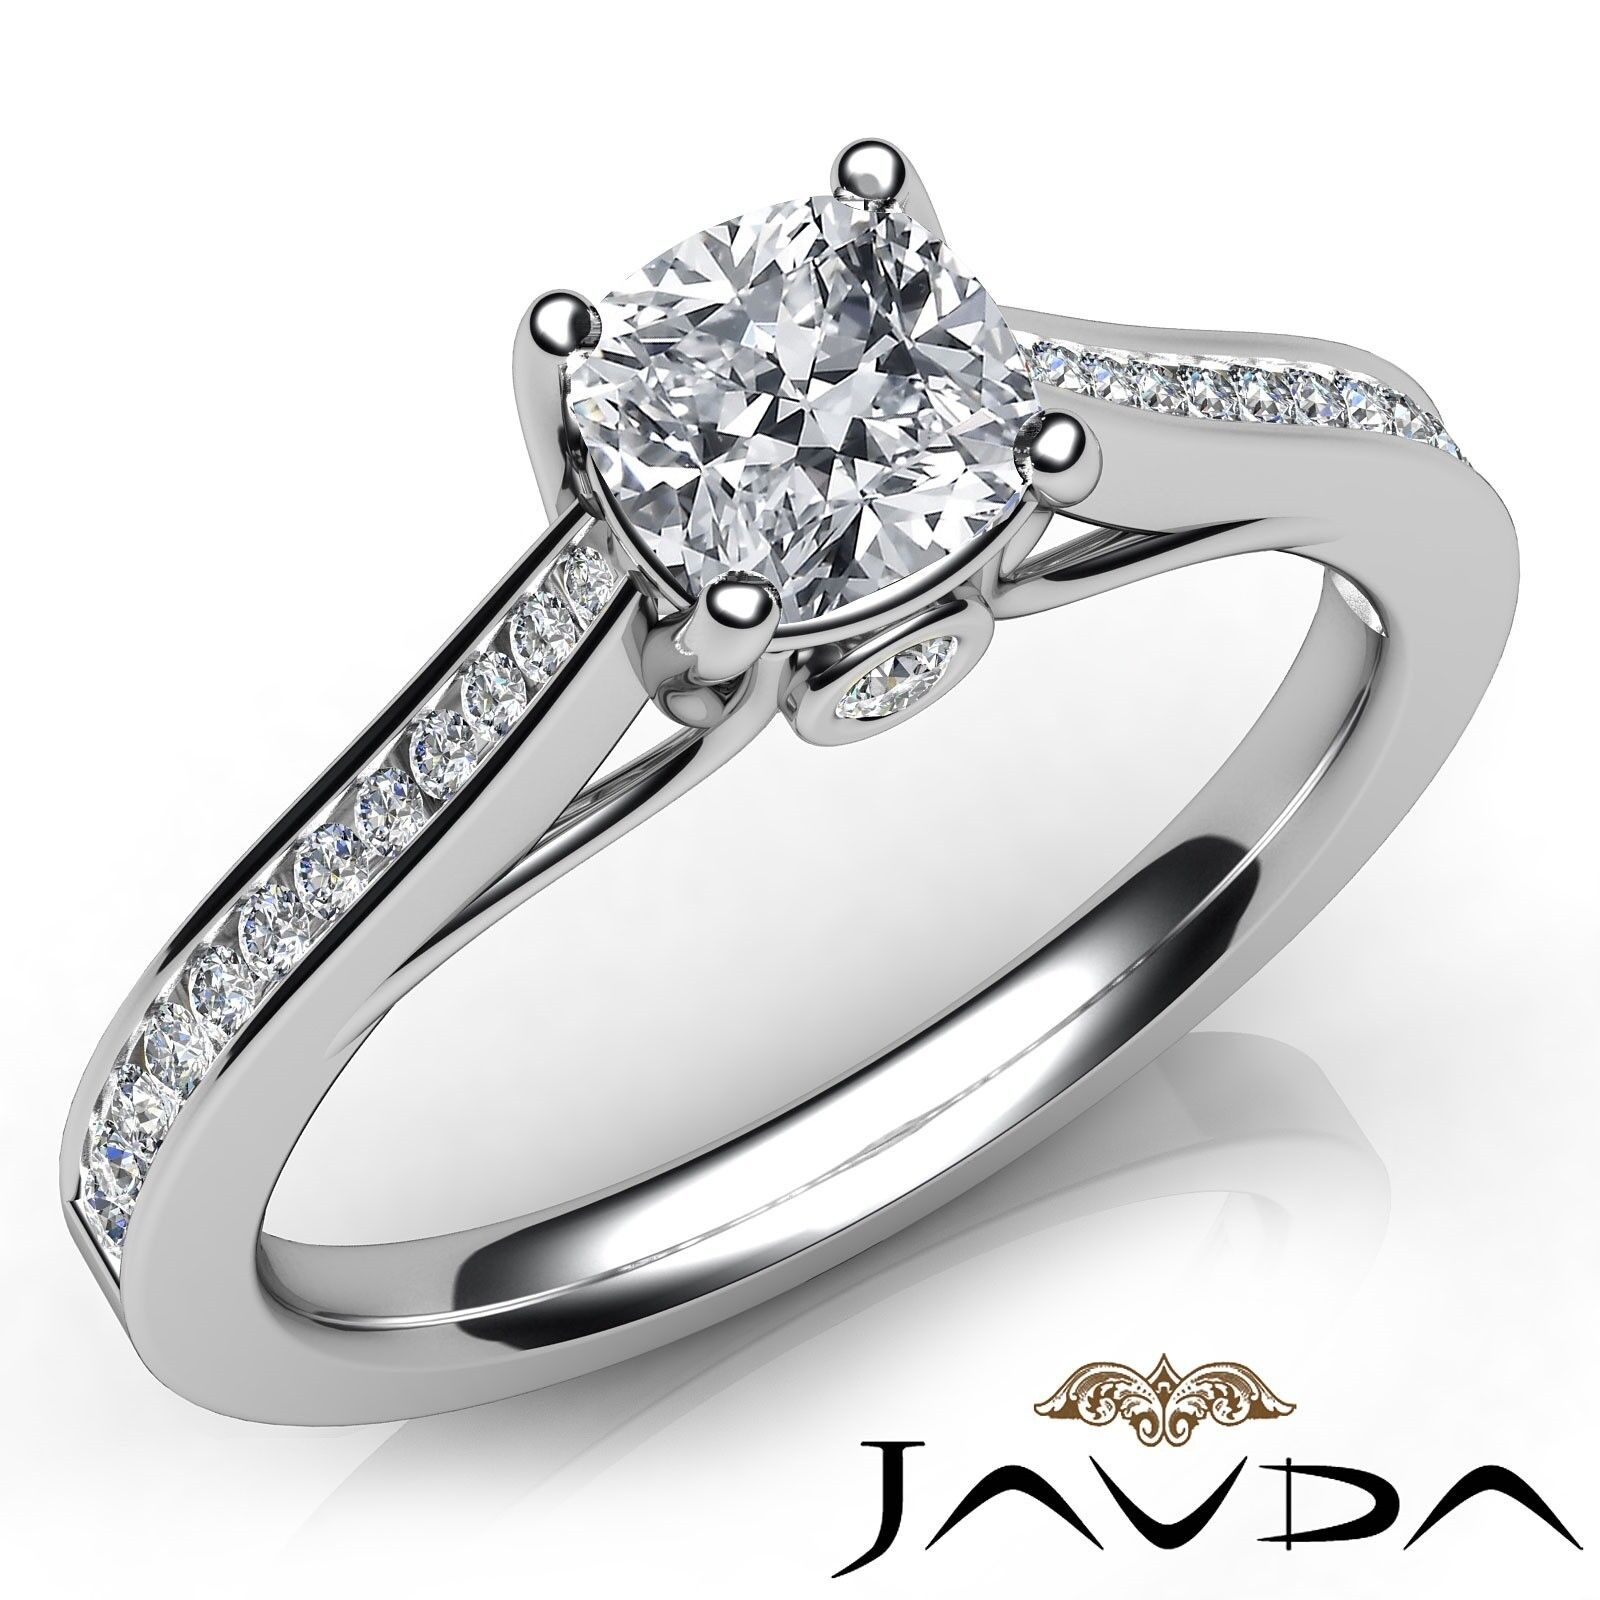 0.9ctw Channel Bezel Prong Set Cushion Diamond Engagement Ring GIA G-SI2 W Gold